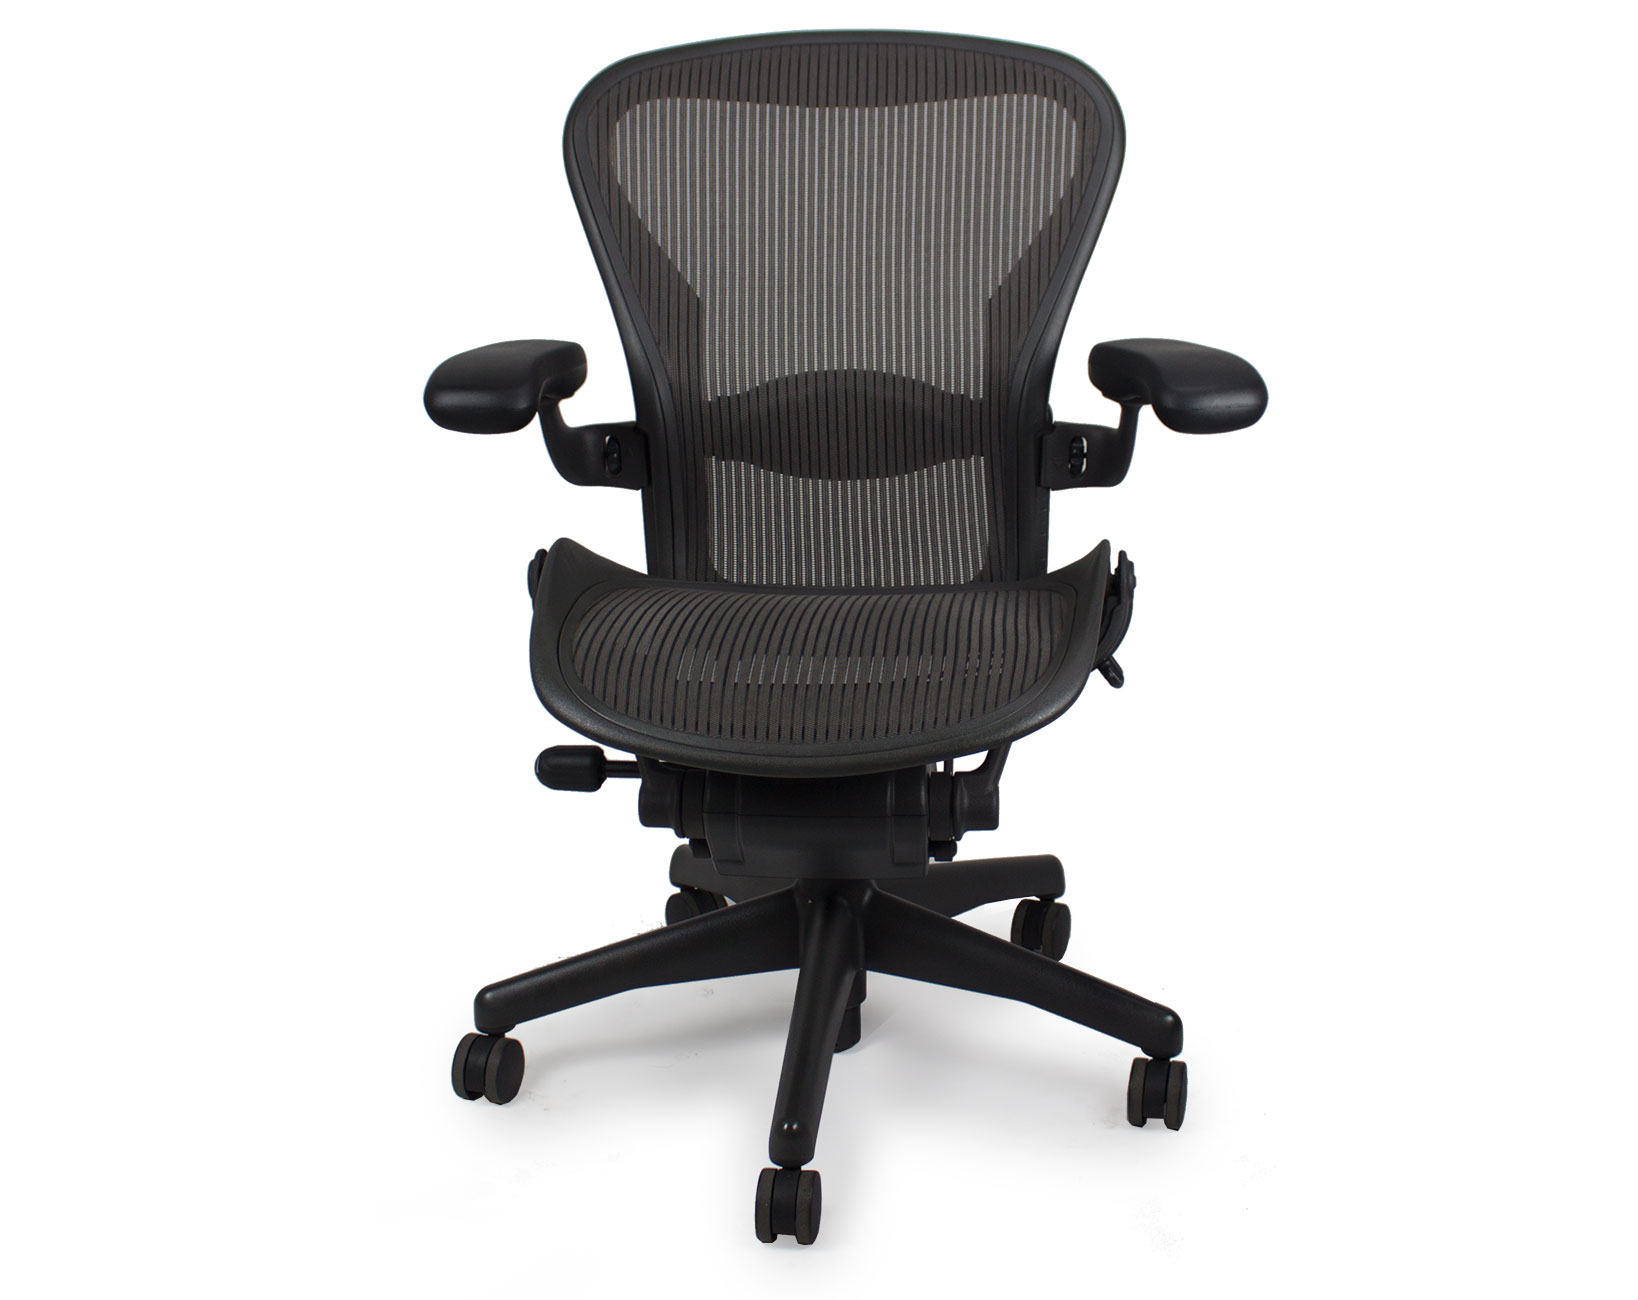 used herman miller aeron chair graphite frame classic carbon pellicle mesh office furniture ethosource - Herman Miller Aeron Chair